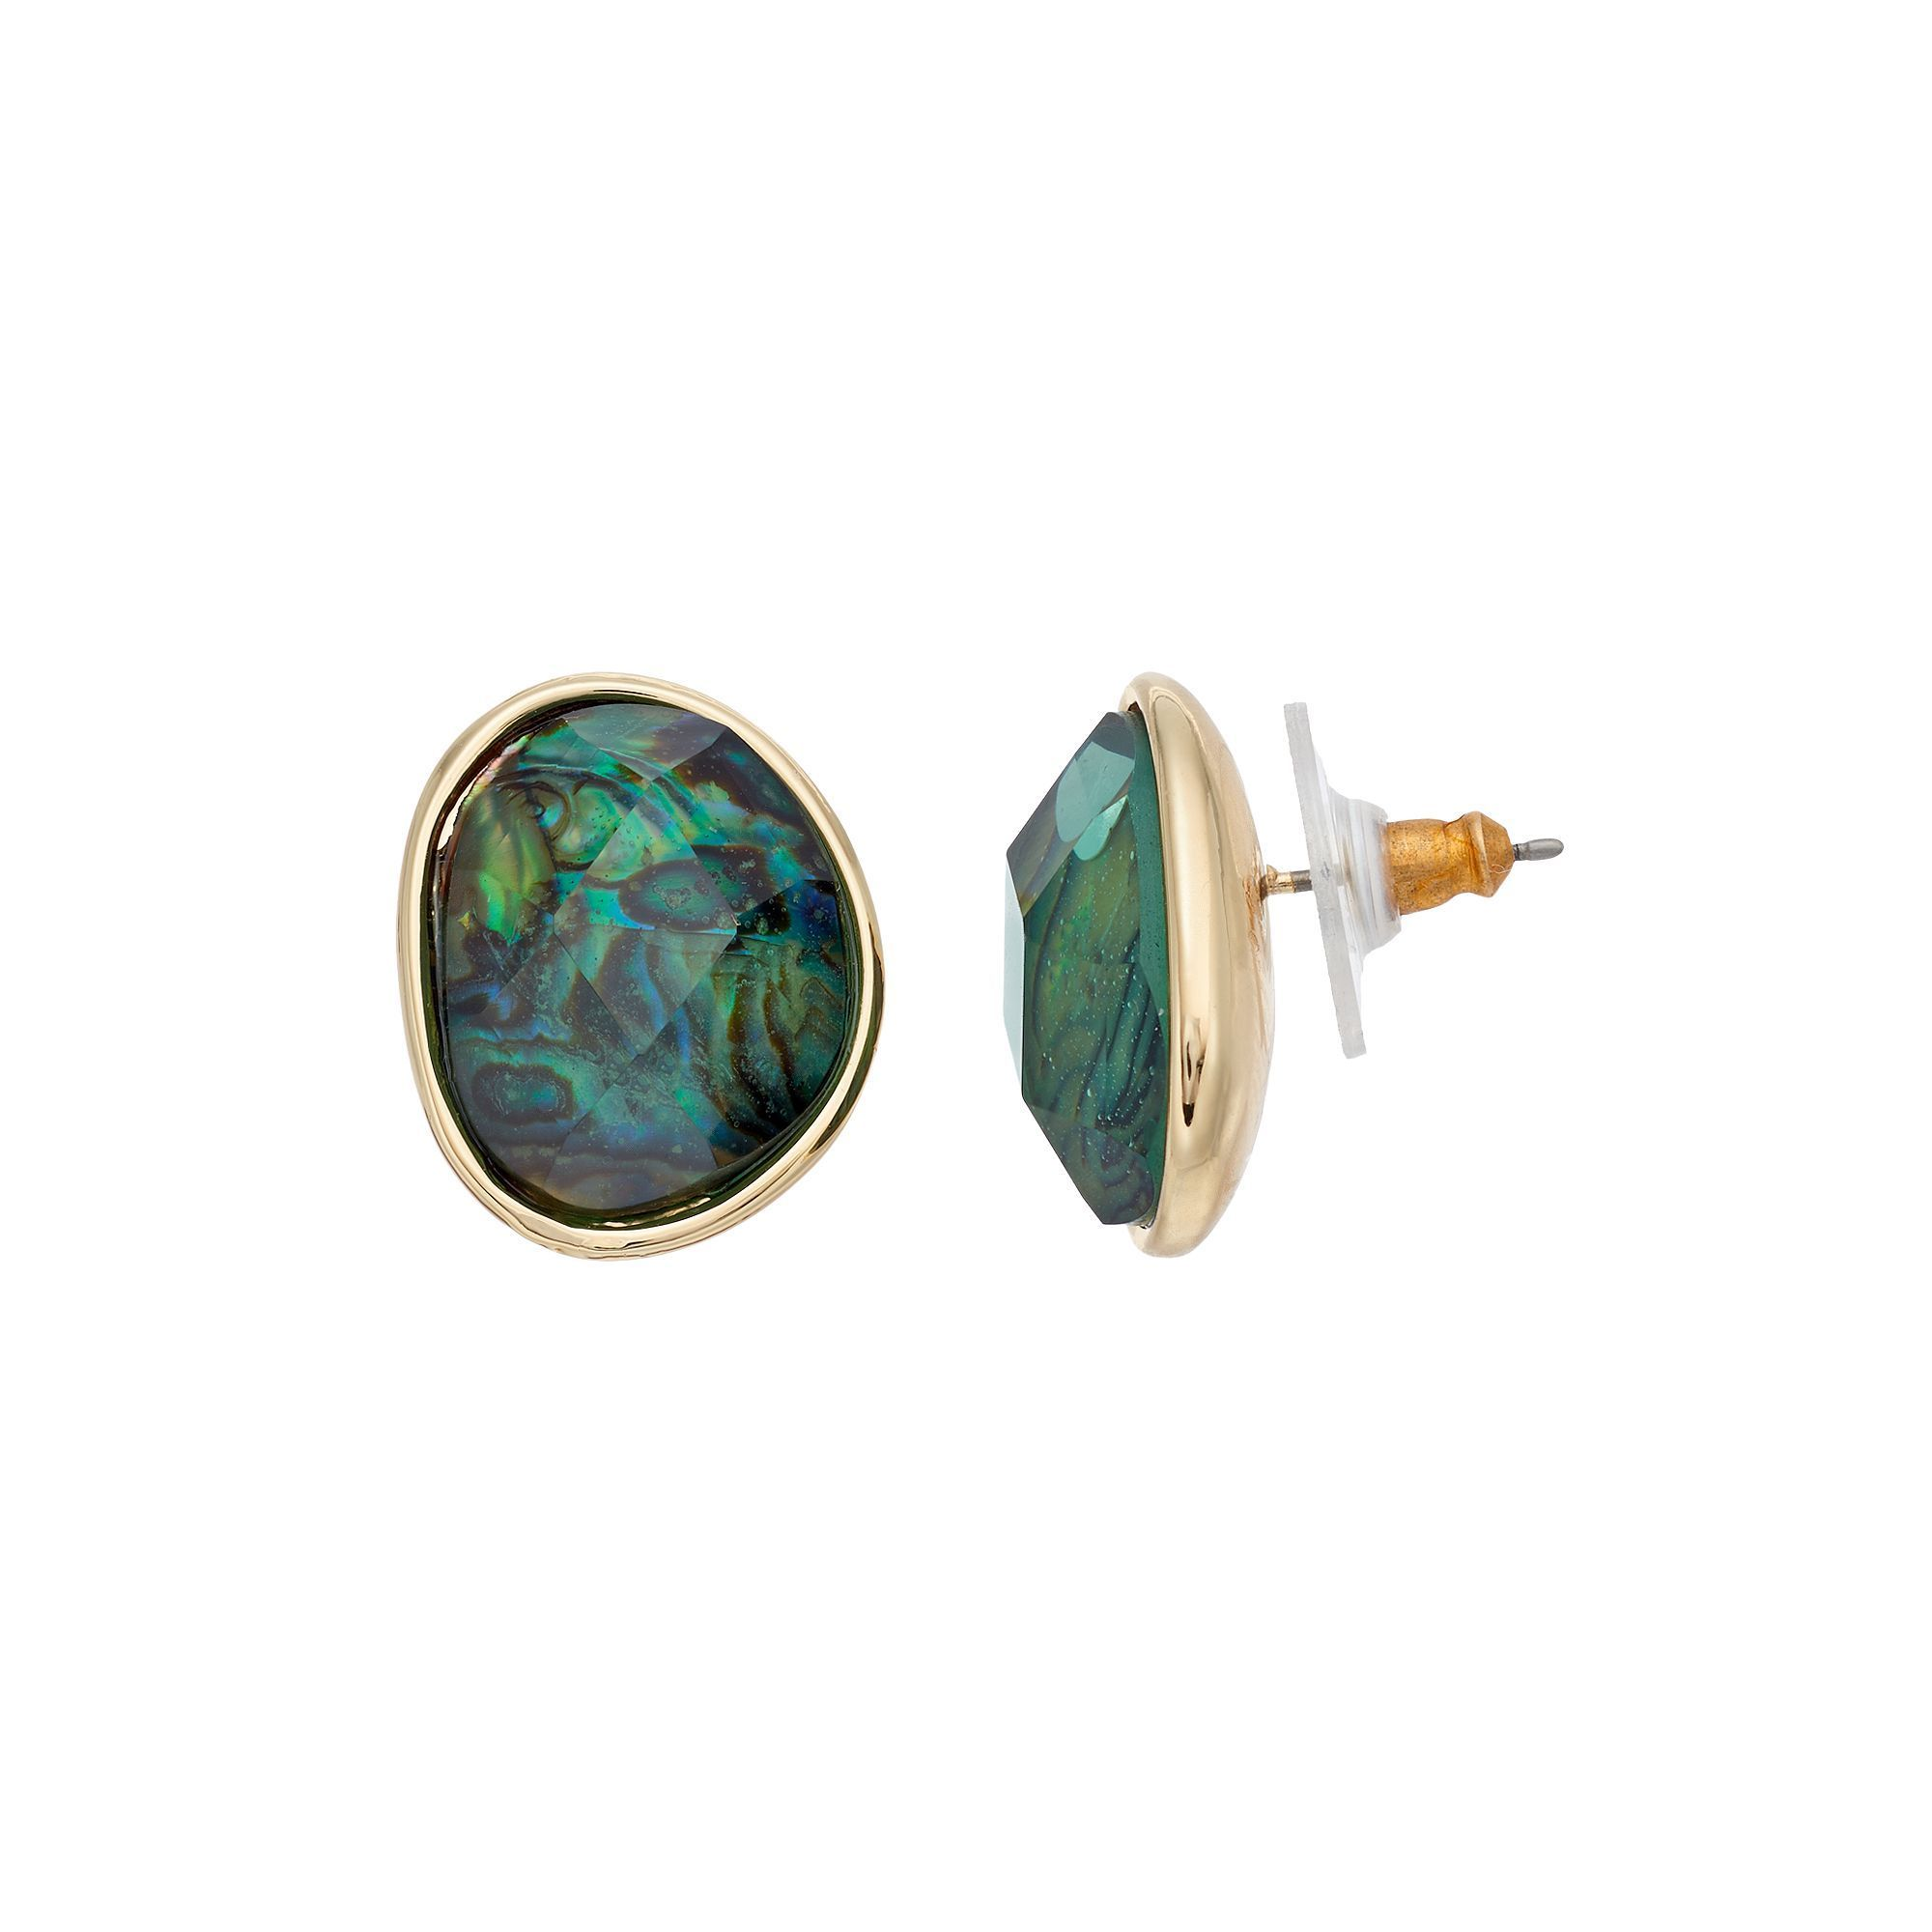 doublet judith whatjewel s jack women abalone womens stud earrings